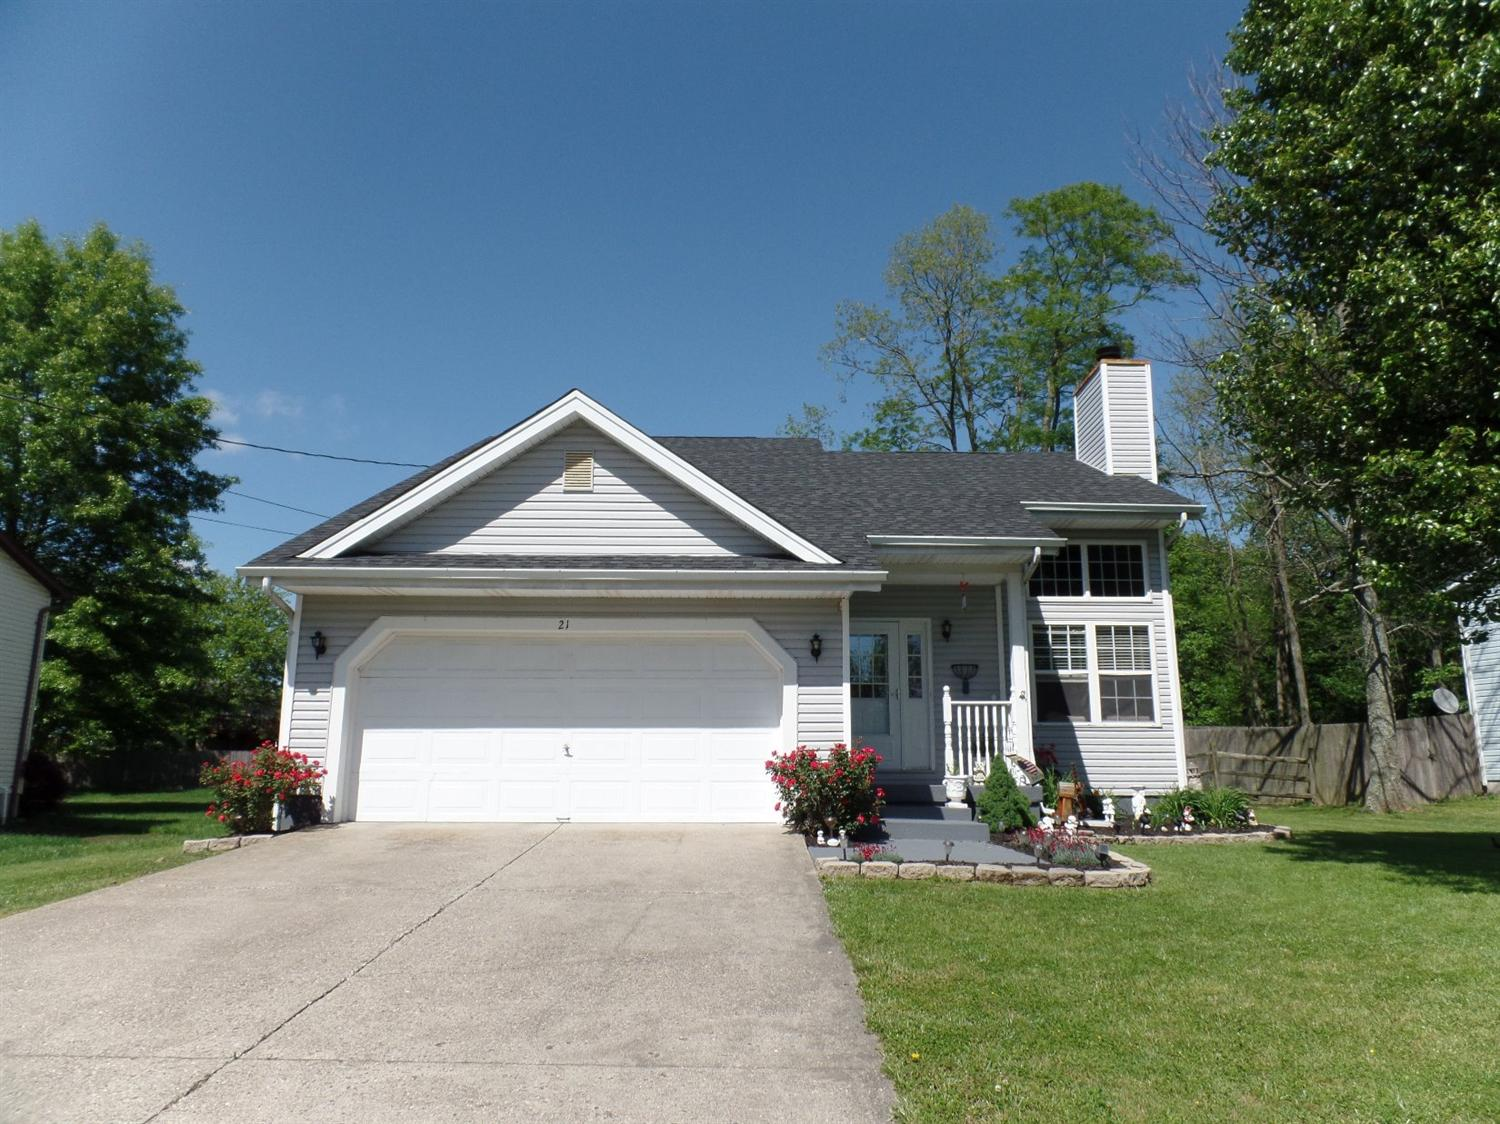 Photo 1 for 21 Kelley Dr Florence, KY 41042